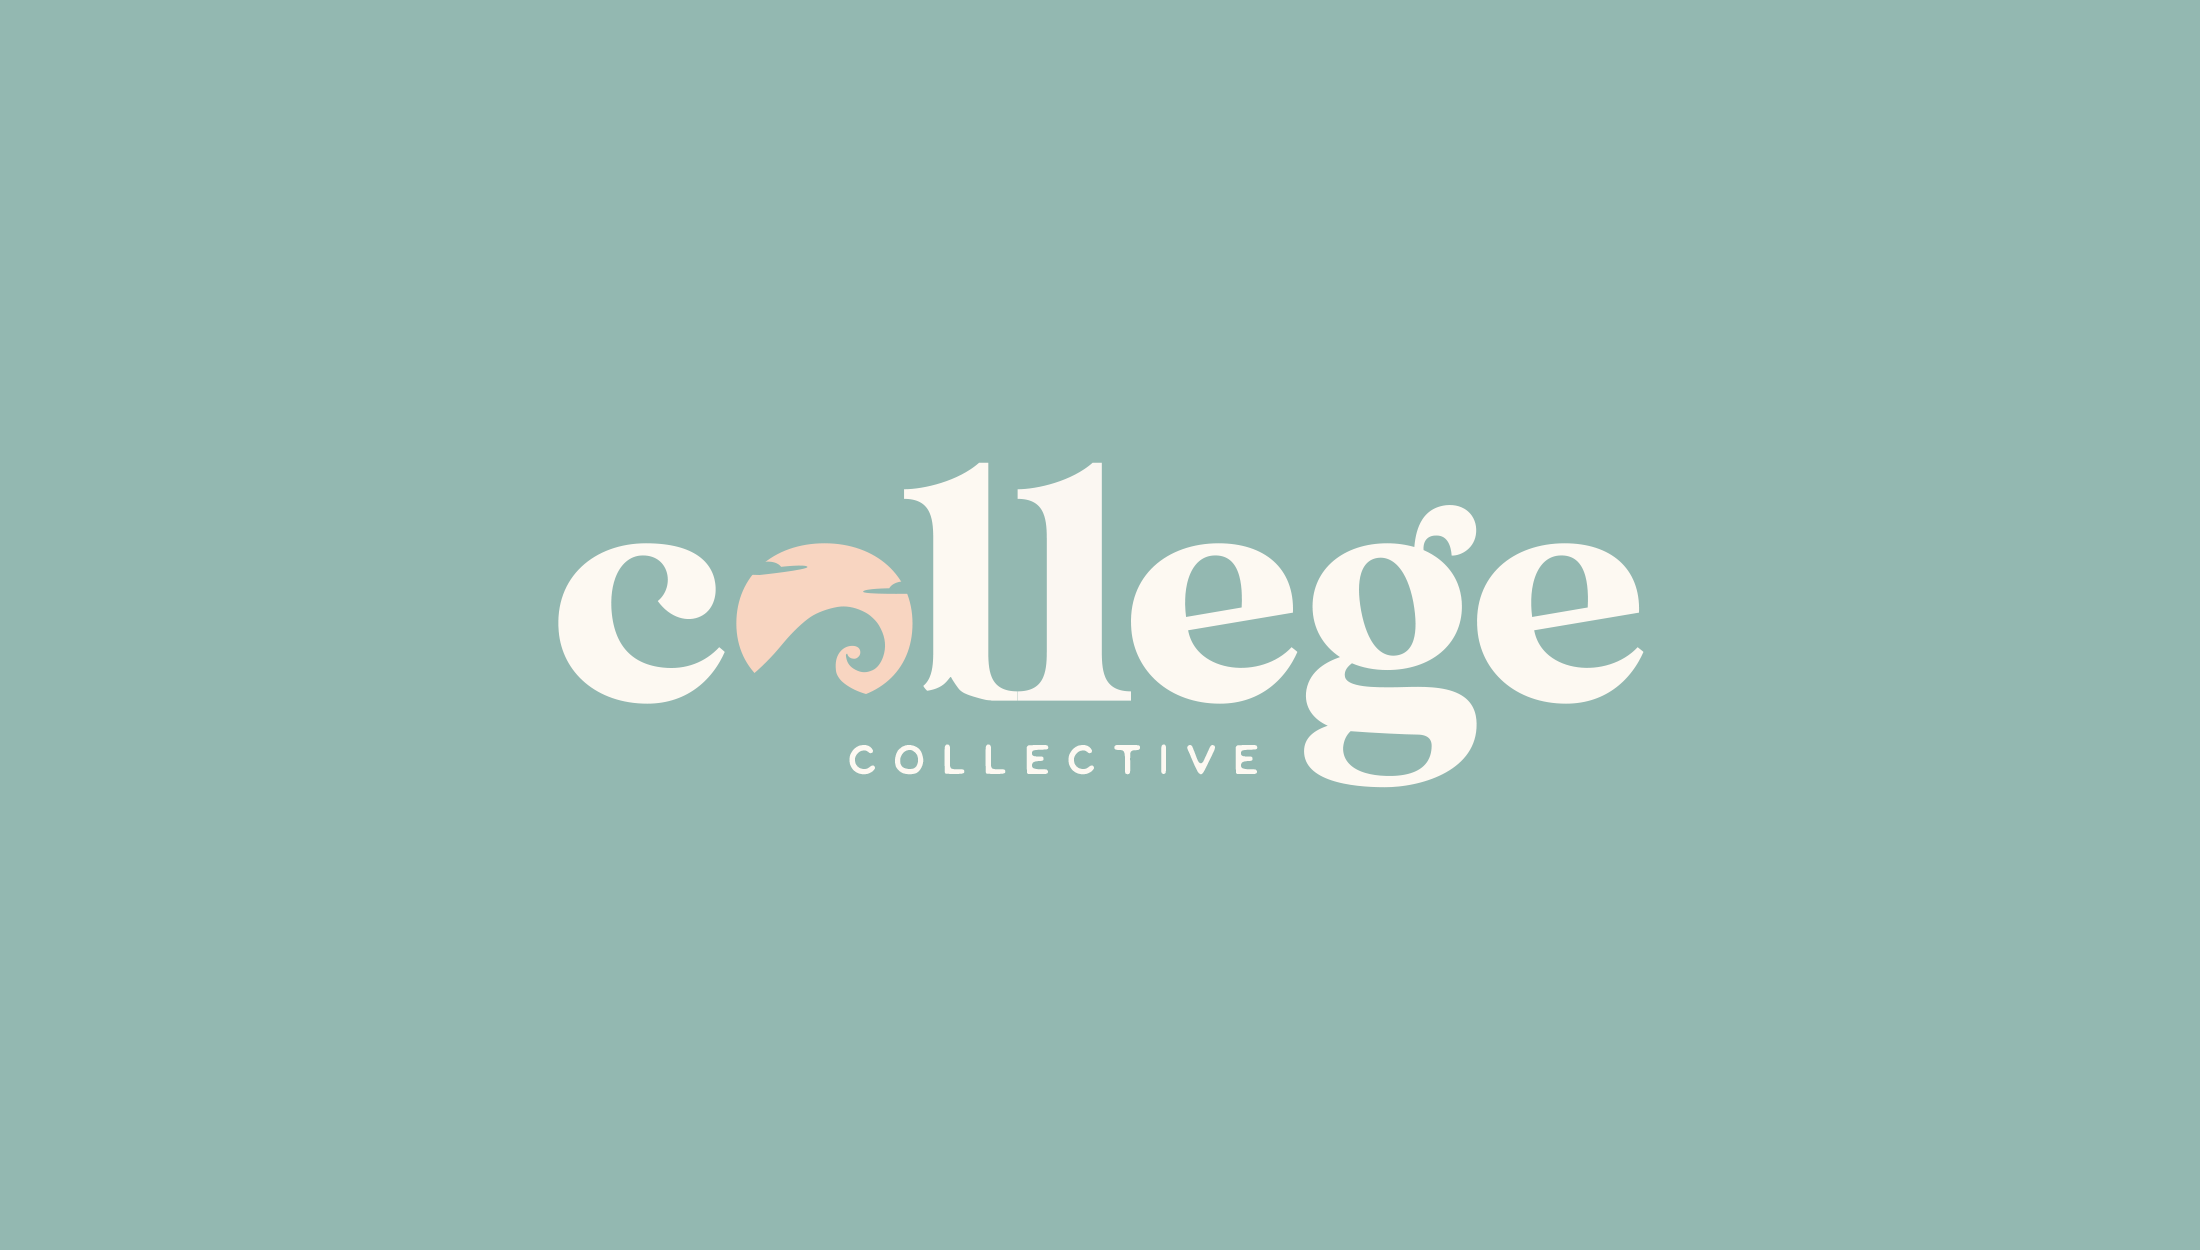 Alternative full logo design for College Collective, The College Collective membership gives students a step-by-step plan for applying to college with the support of a community full of other educational professionals and peers - designed by Wiltshire-based graphic designer, Kaye Huett